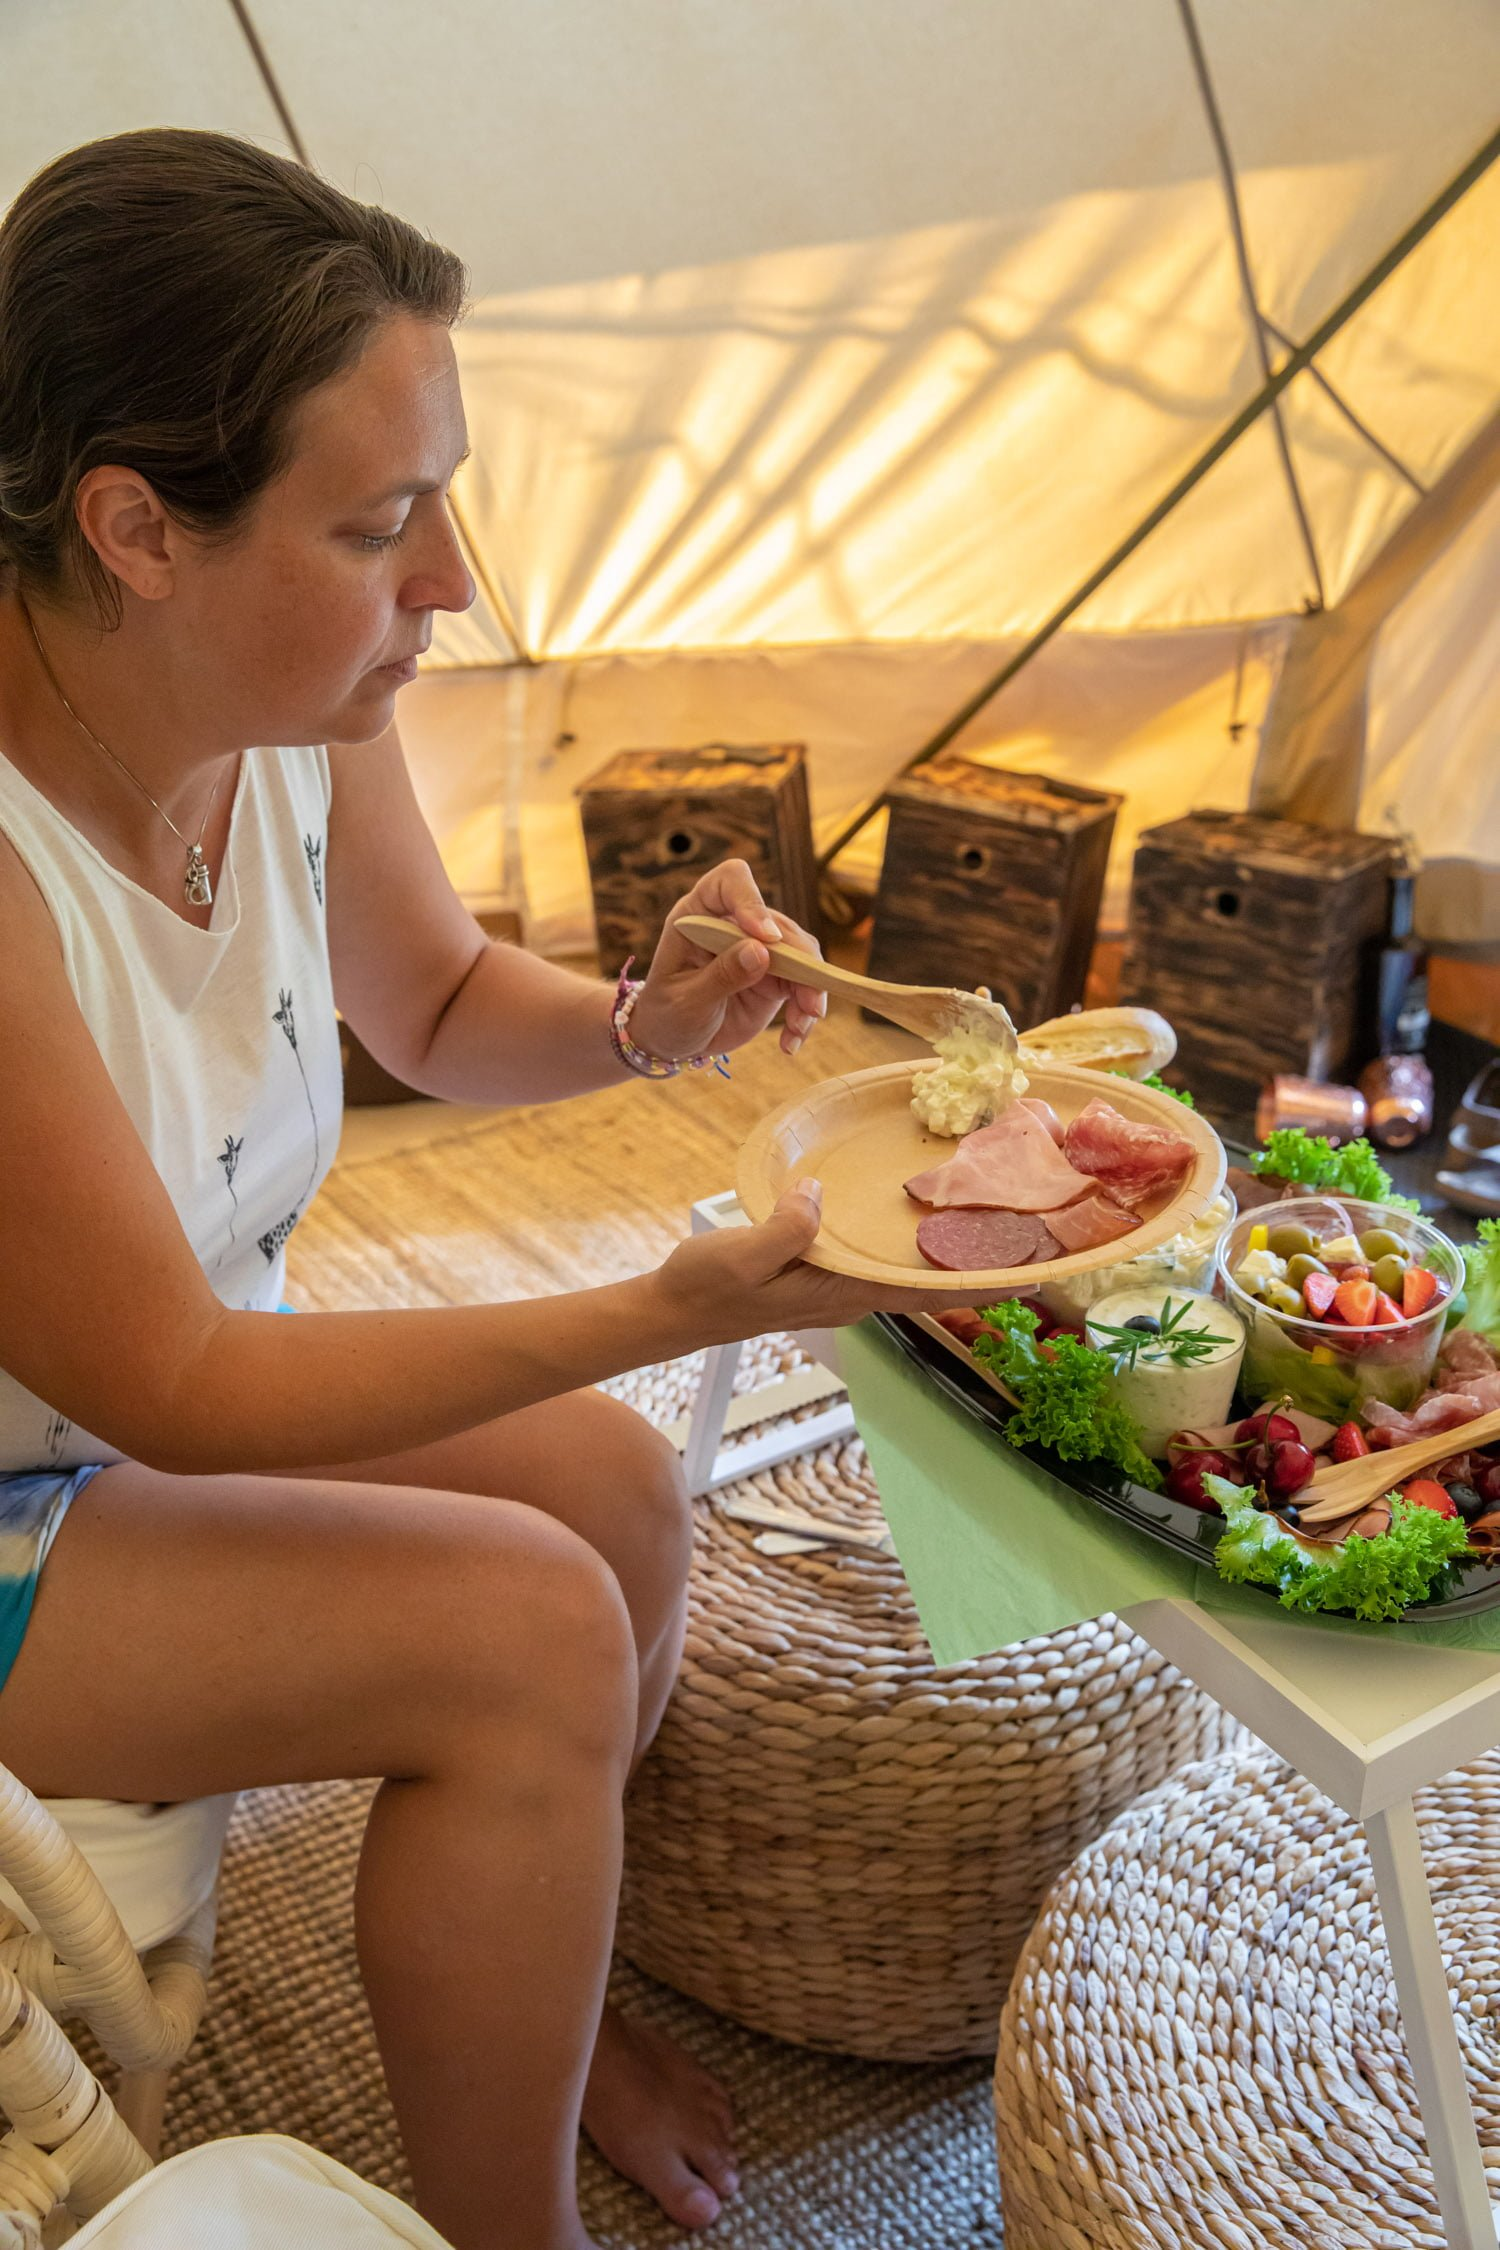 Our experience of Glamping in Dalarna